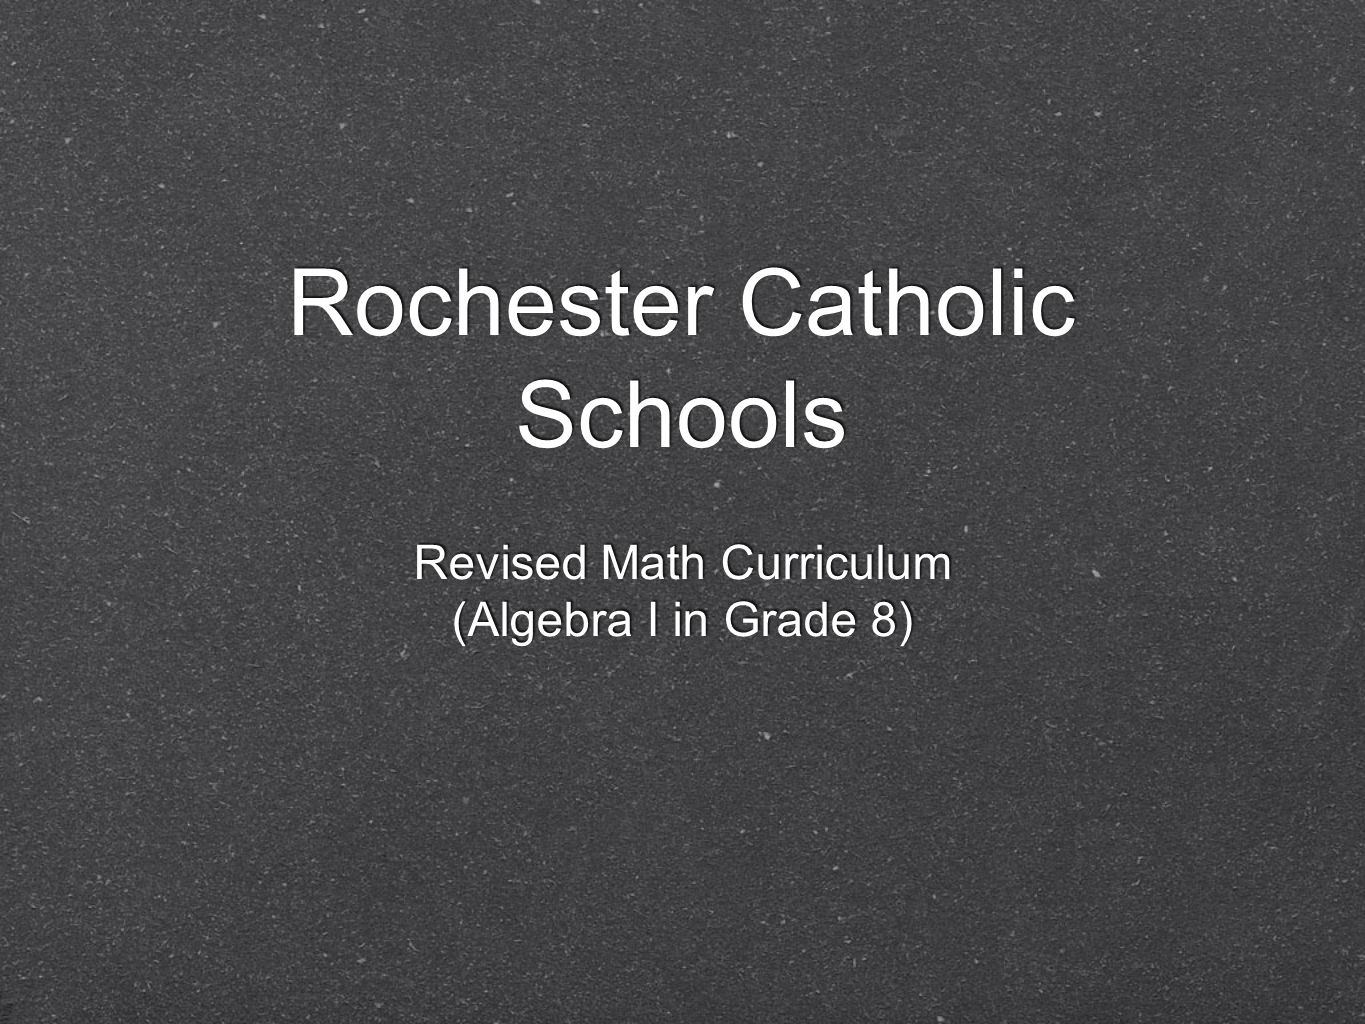 Rochester Catholic Schools Revised Math Curriculum (Algebra I in Grade 8) Revised Math Curriculum (Algebra I in Grade 8)